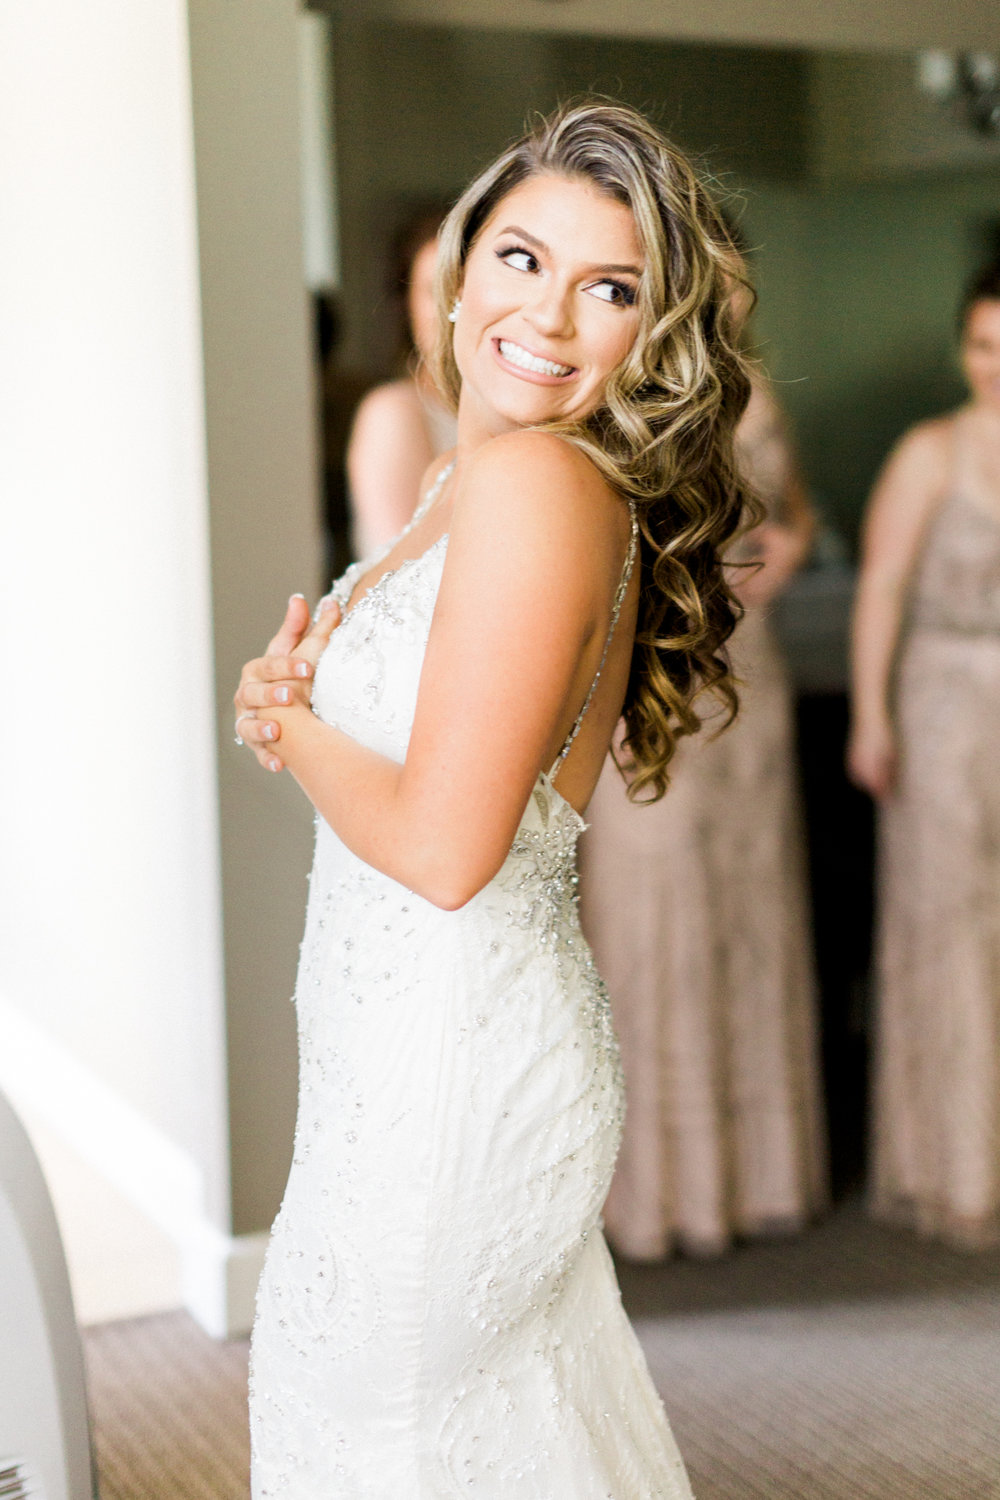 jessica-bellinger-photography-harmony-golf-preserve-wedding-photos-8886.jpg